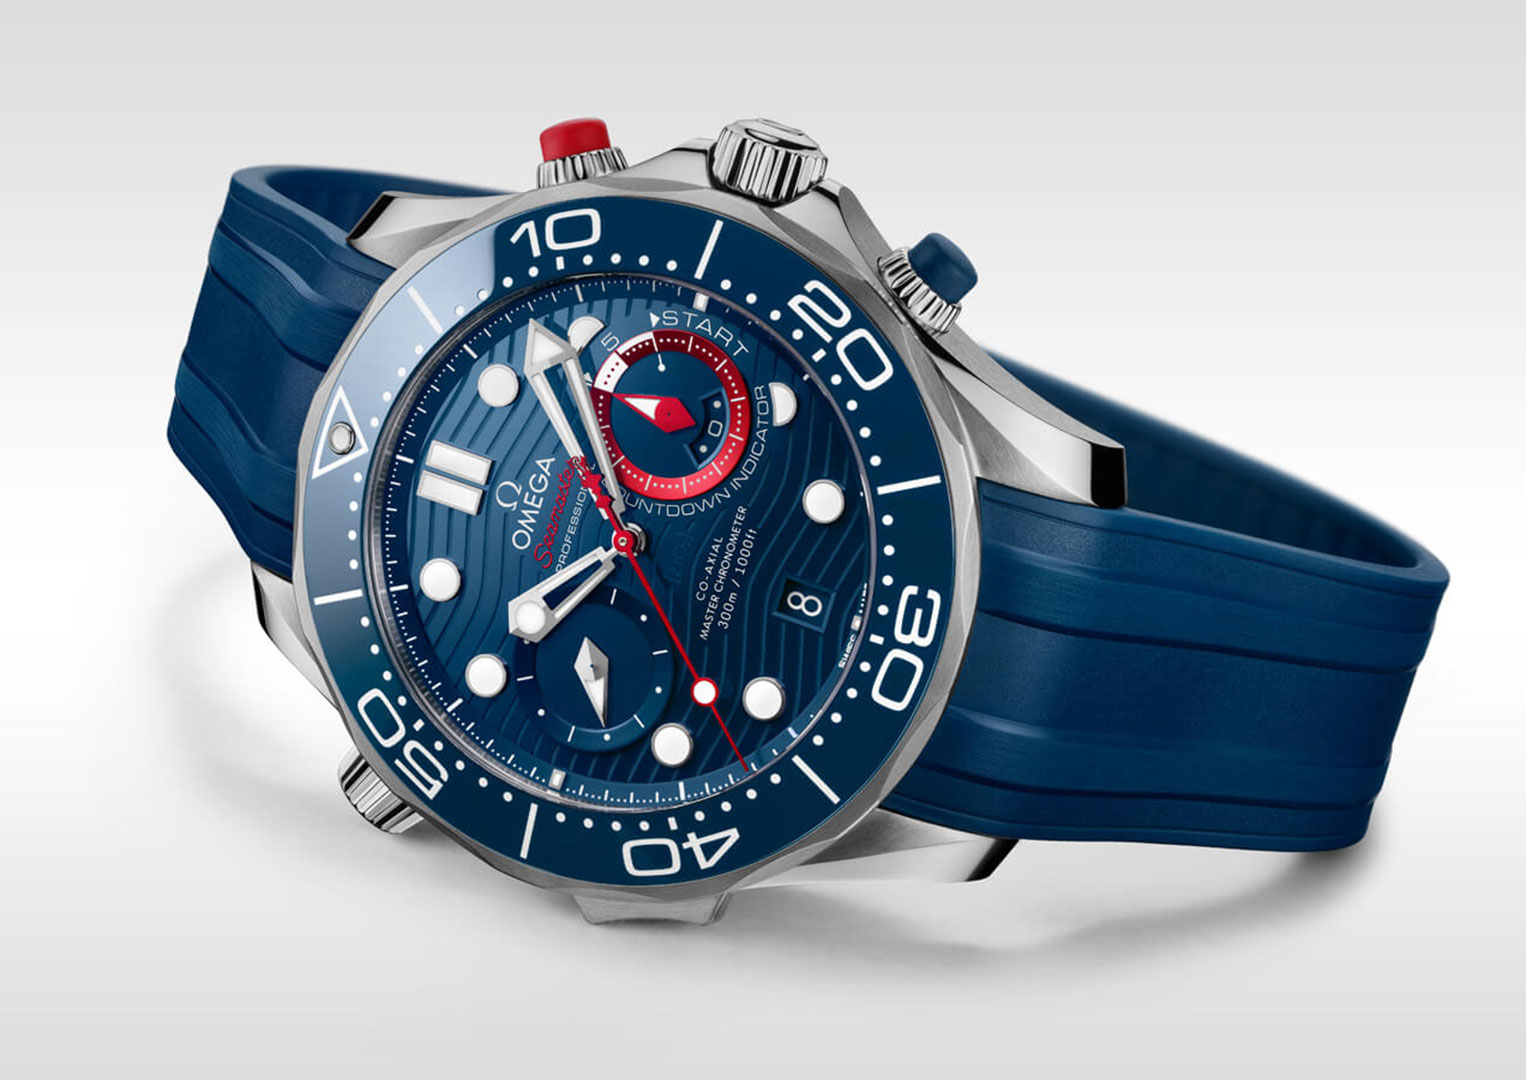 The Omega Seamaster Diver 300M America's Cup Chronograph has rubberised chronograph pushers for improved grip in wet conditions)